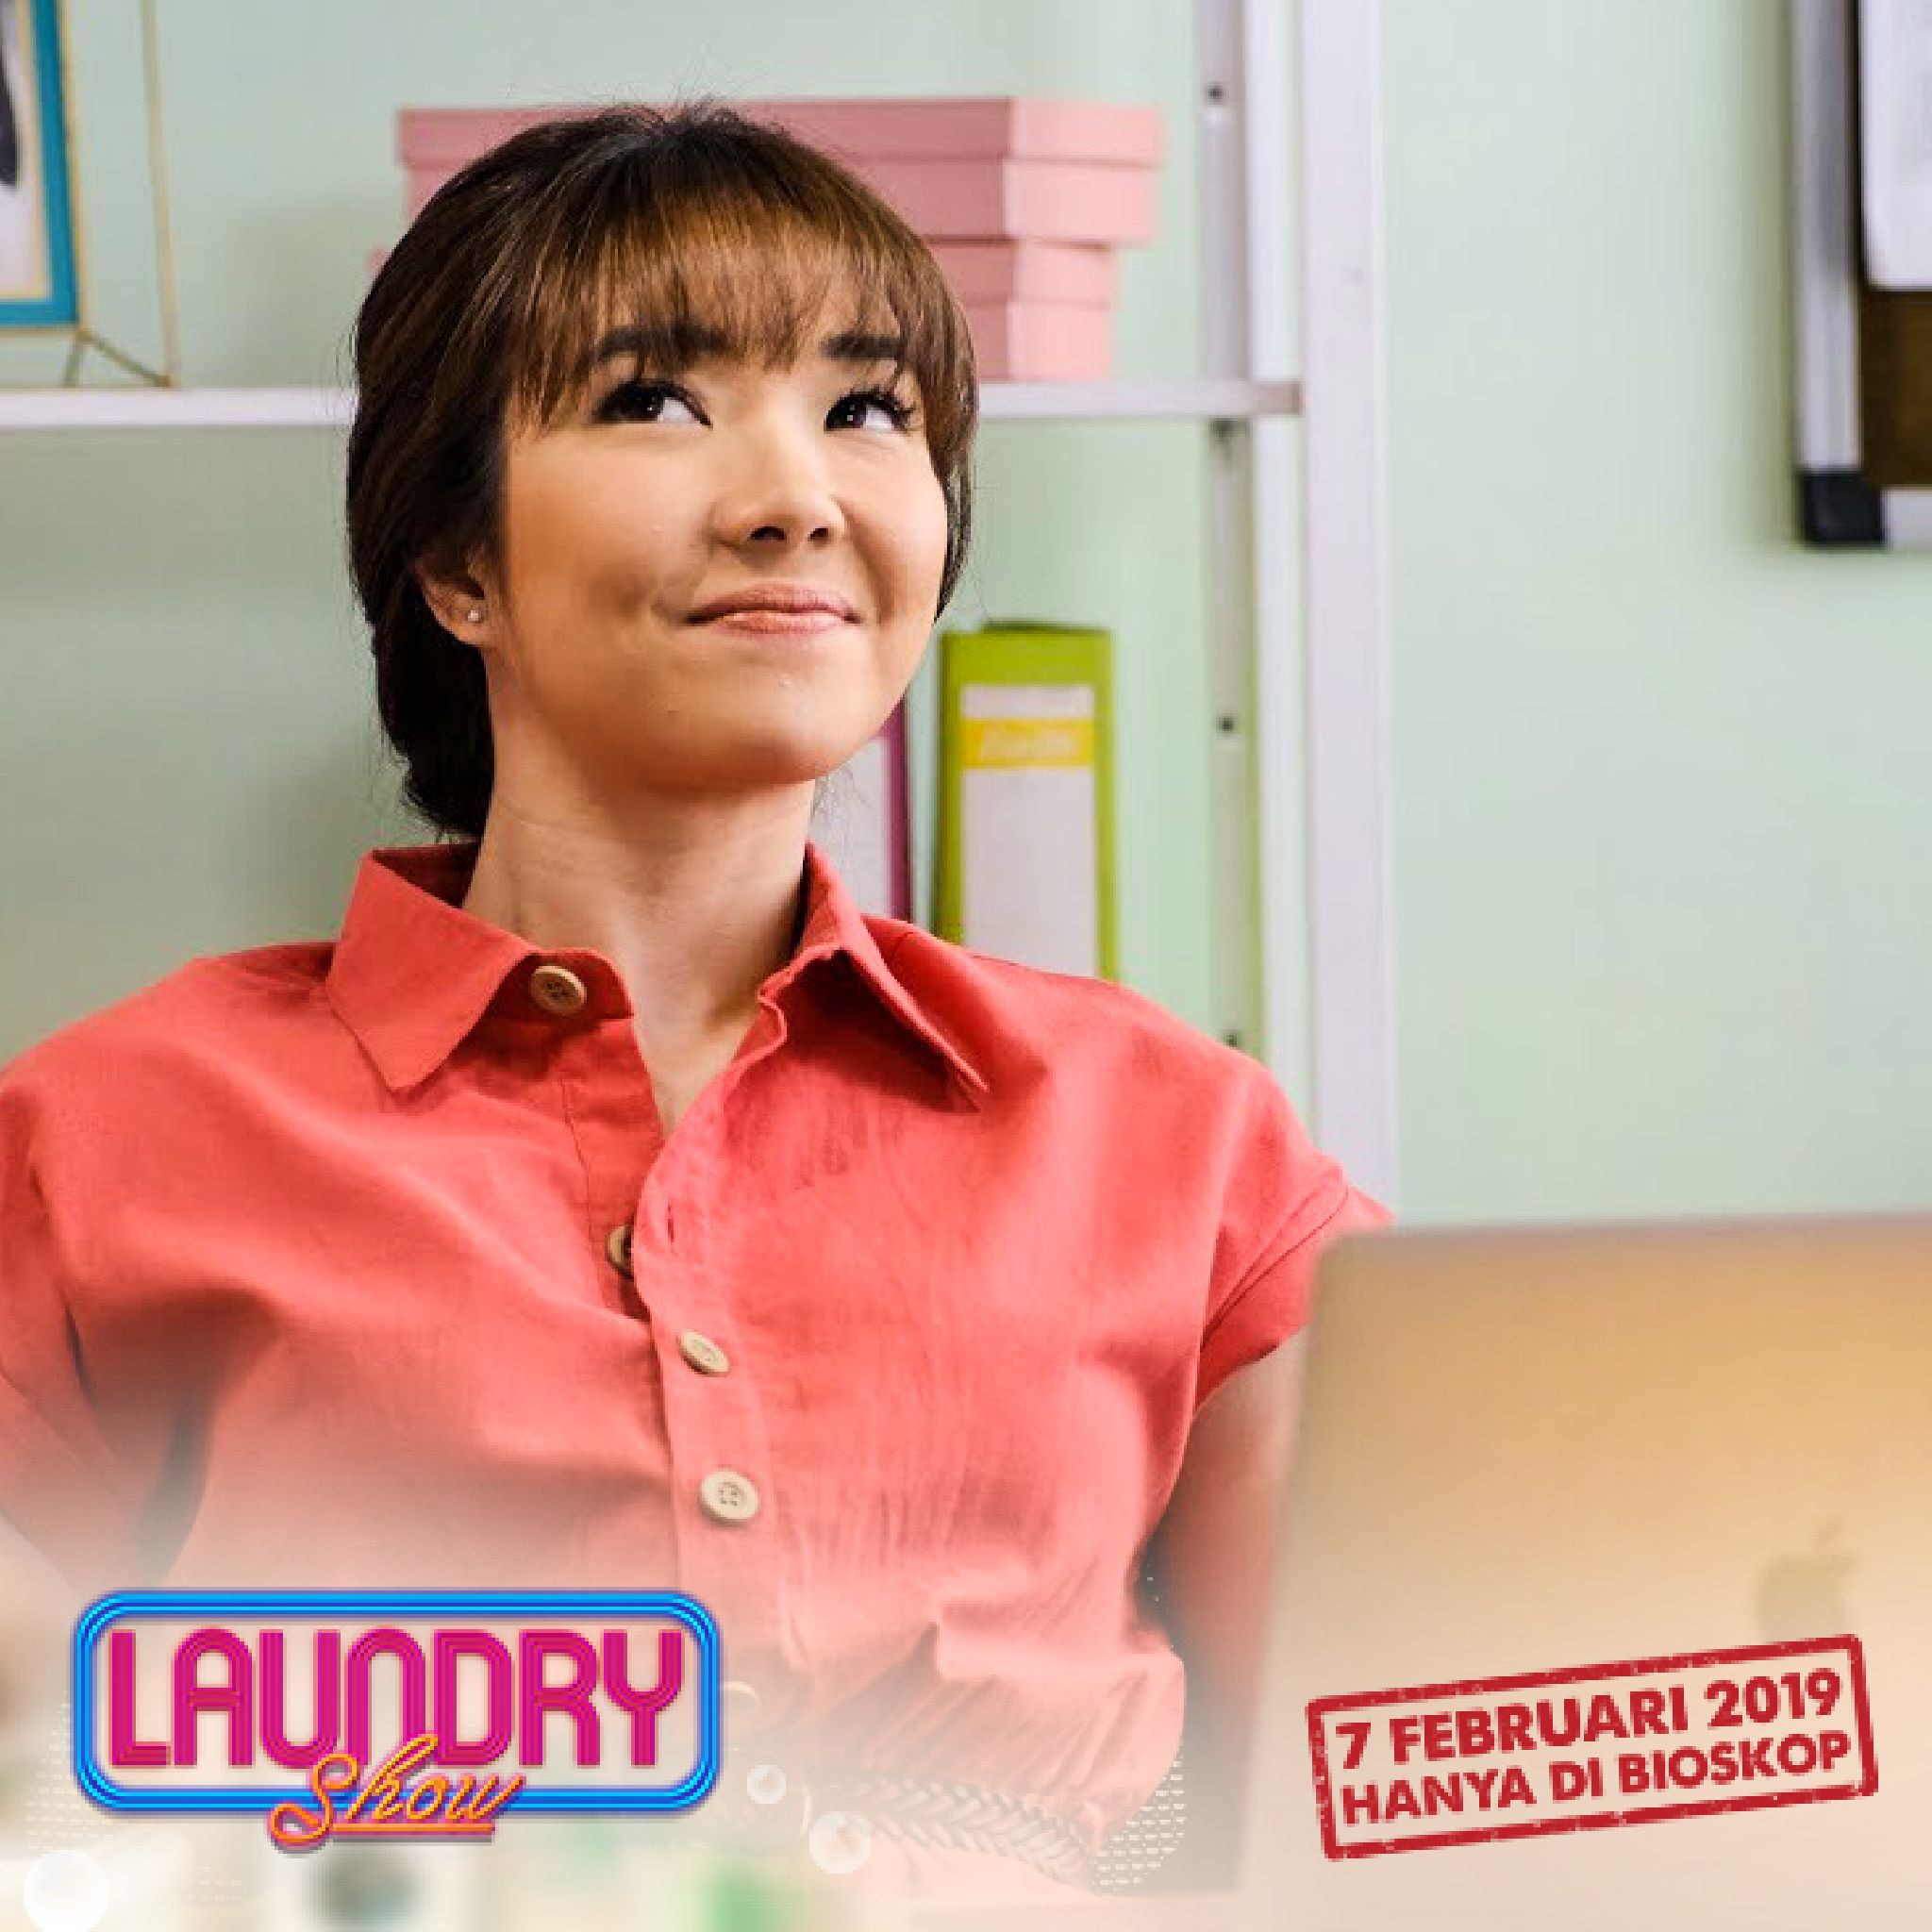 Laundry Show 6